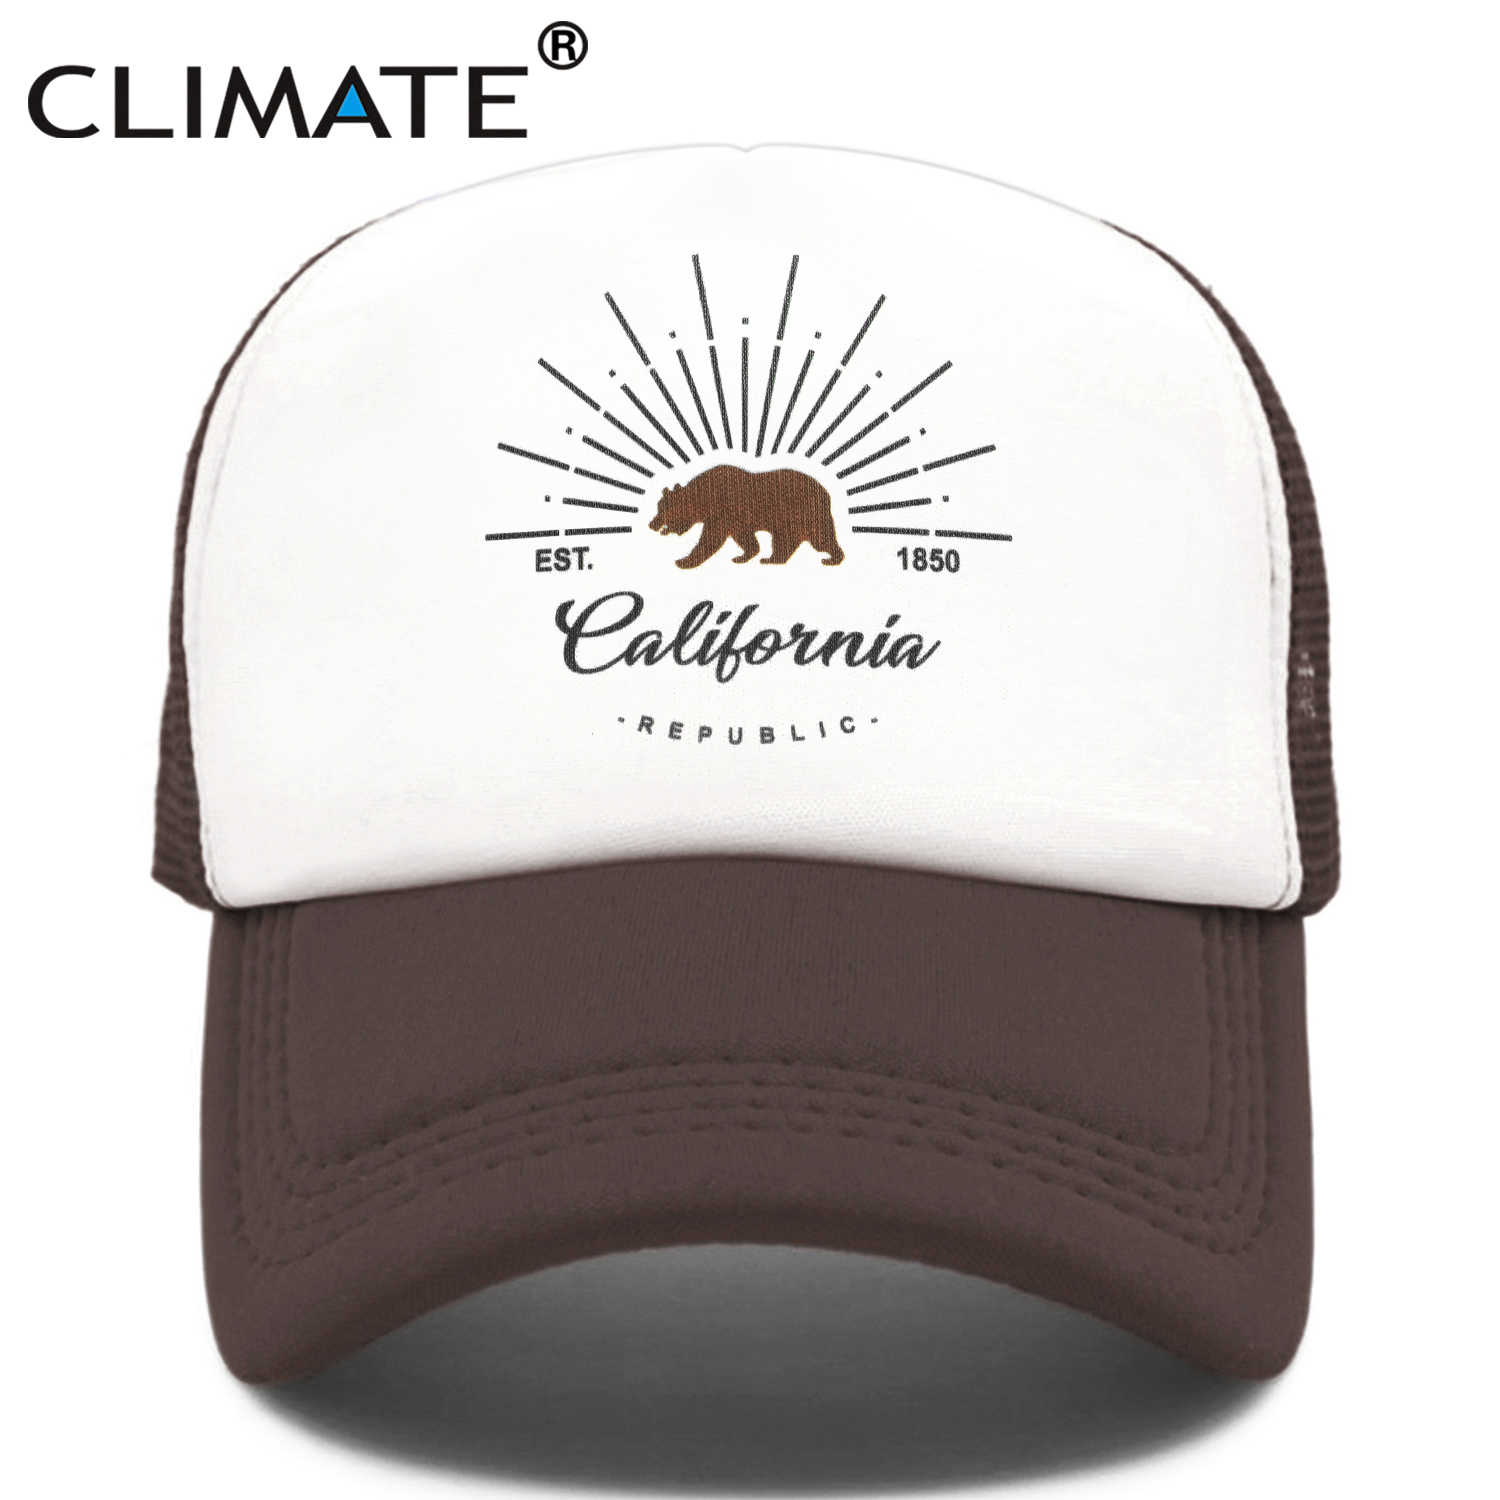 Clima California Trucker Cap Orso California Repubblica Bandiera Caps Uomini Donne Hip Hop Cappello Divertente Fresco Berretto da Baseball Della Maglia di Estate cap